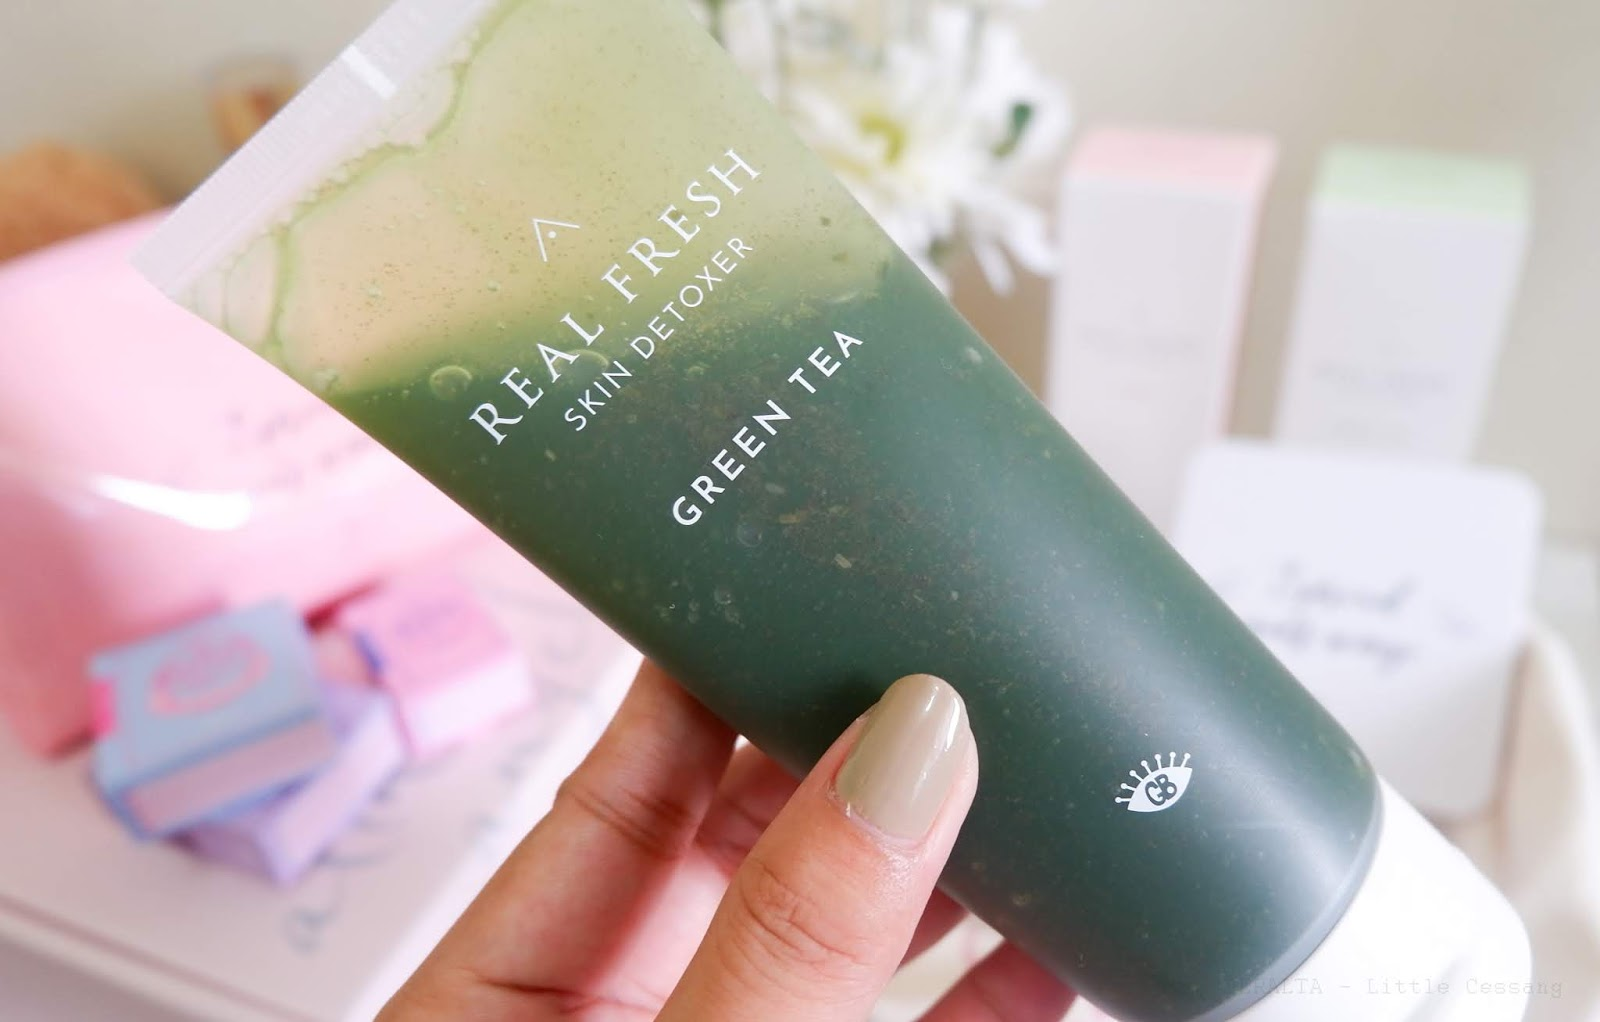 ALTHEA X GET IT BEAUTY REAL FRESH SKIN DETOXER: 10 SECS WASH OFF MASK